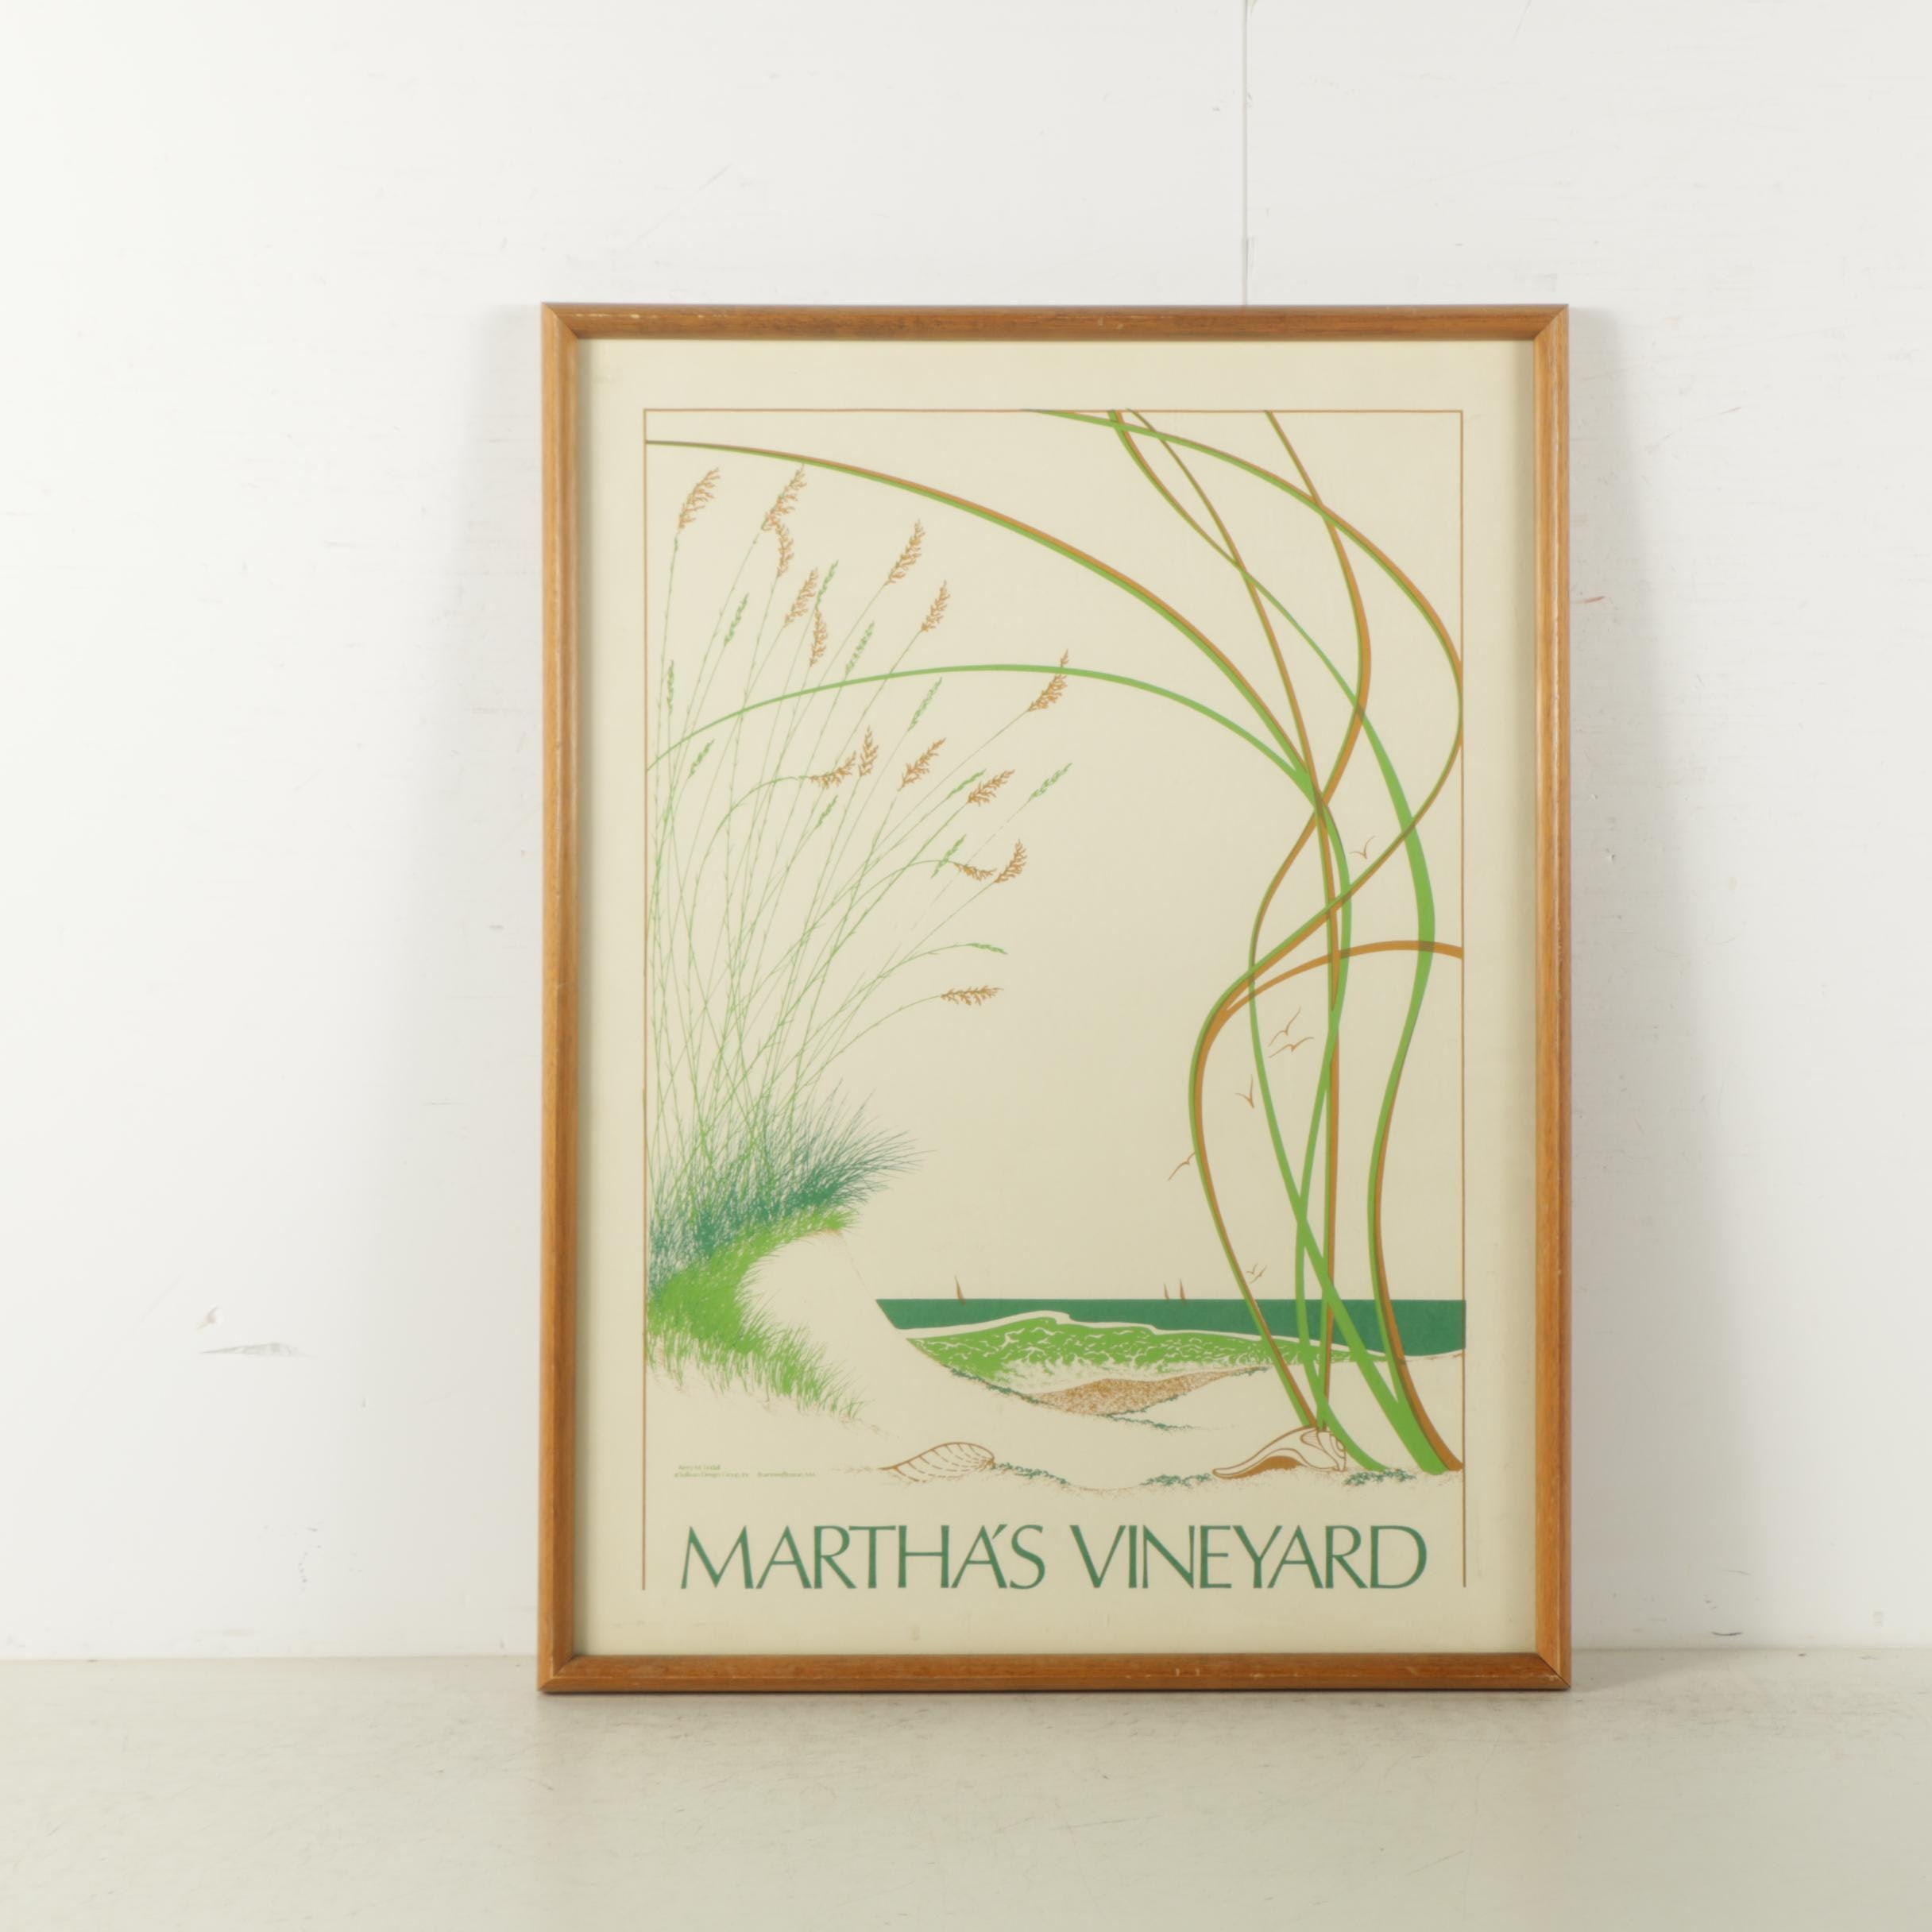 Circa 1980s Martha's Vineyard Serigraph Poster after Kerry M. Tindall